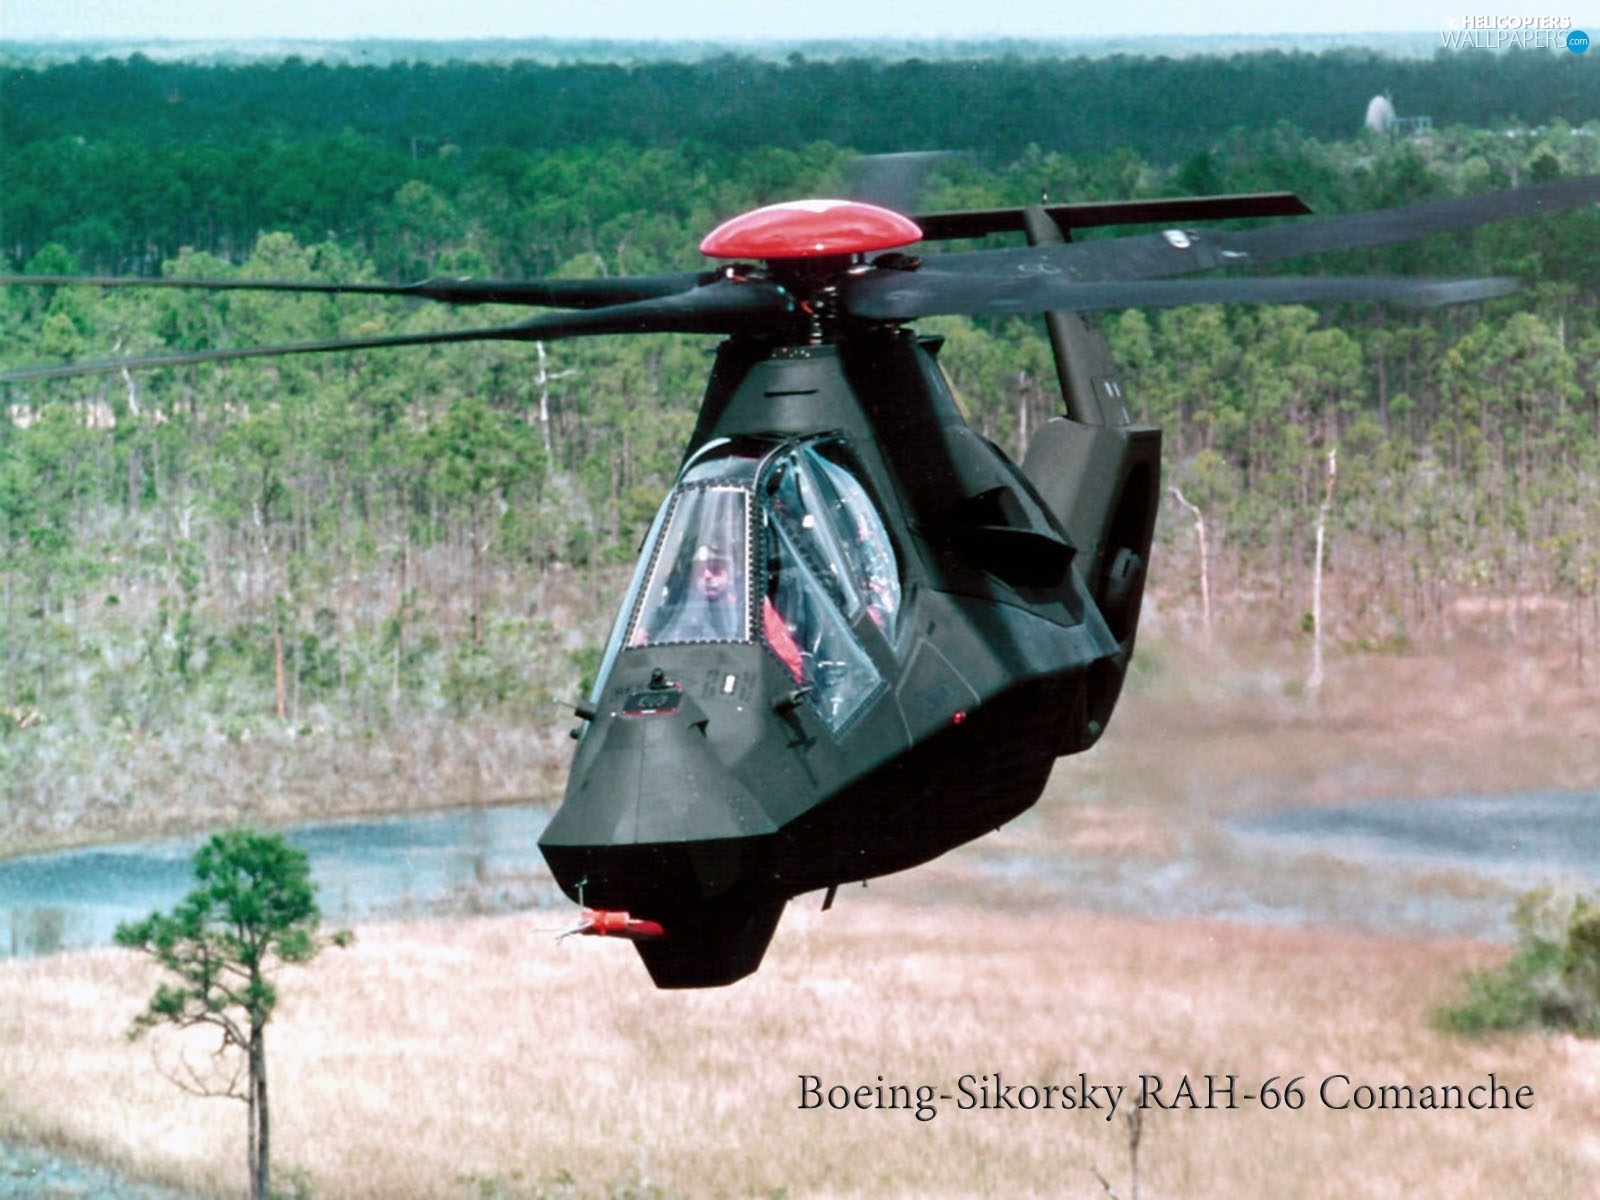 Boeing-Sikorsky, RAH-66 Comanche